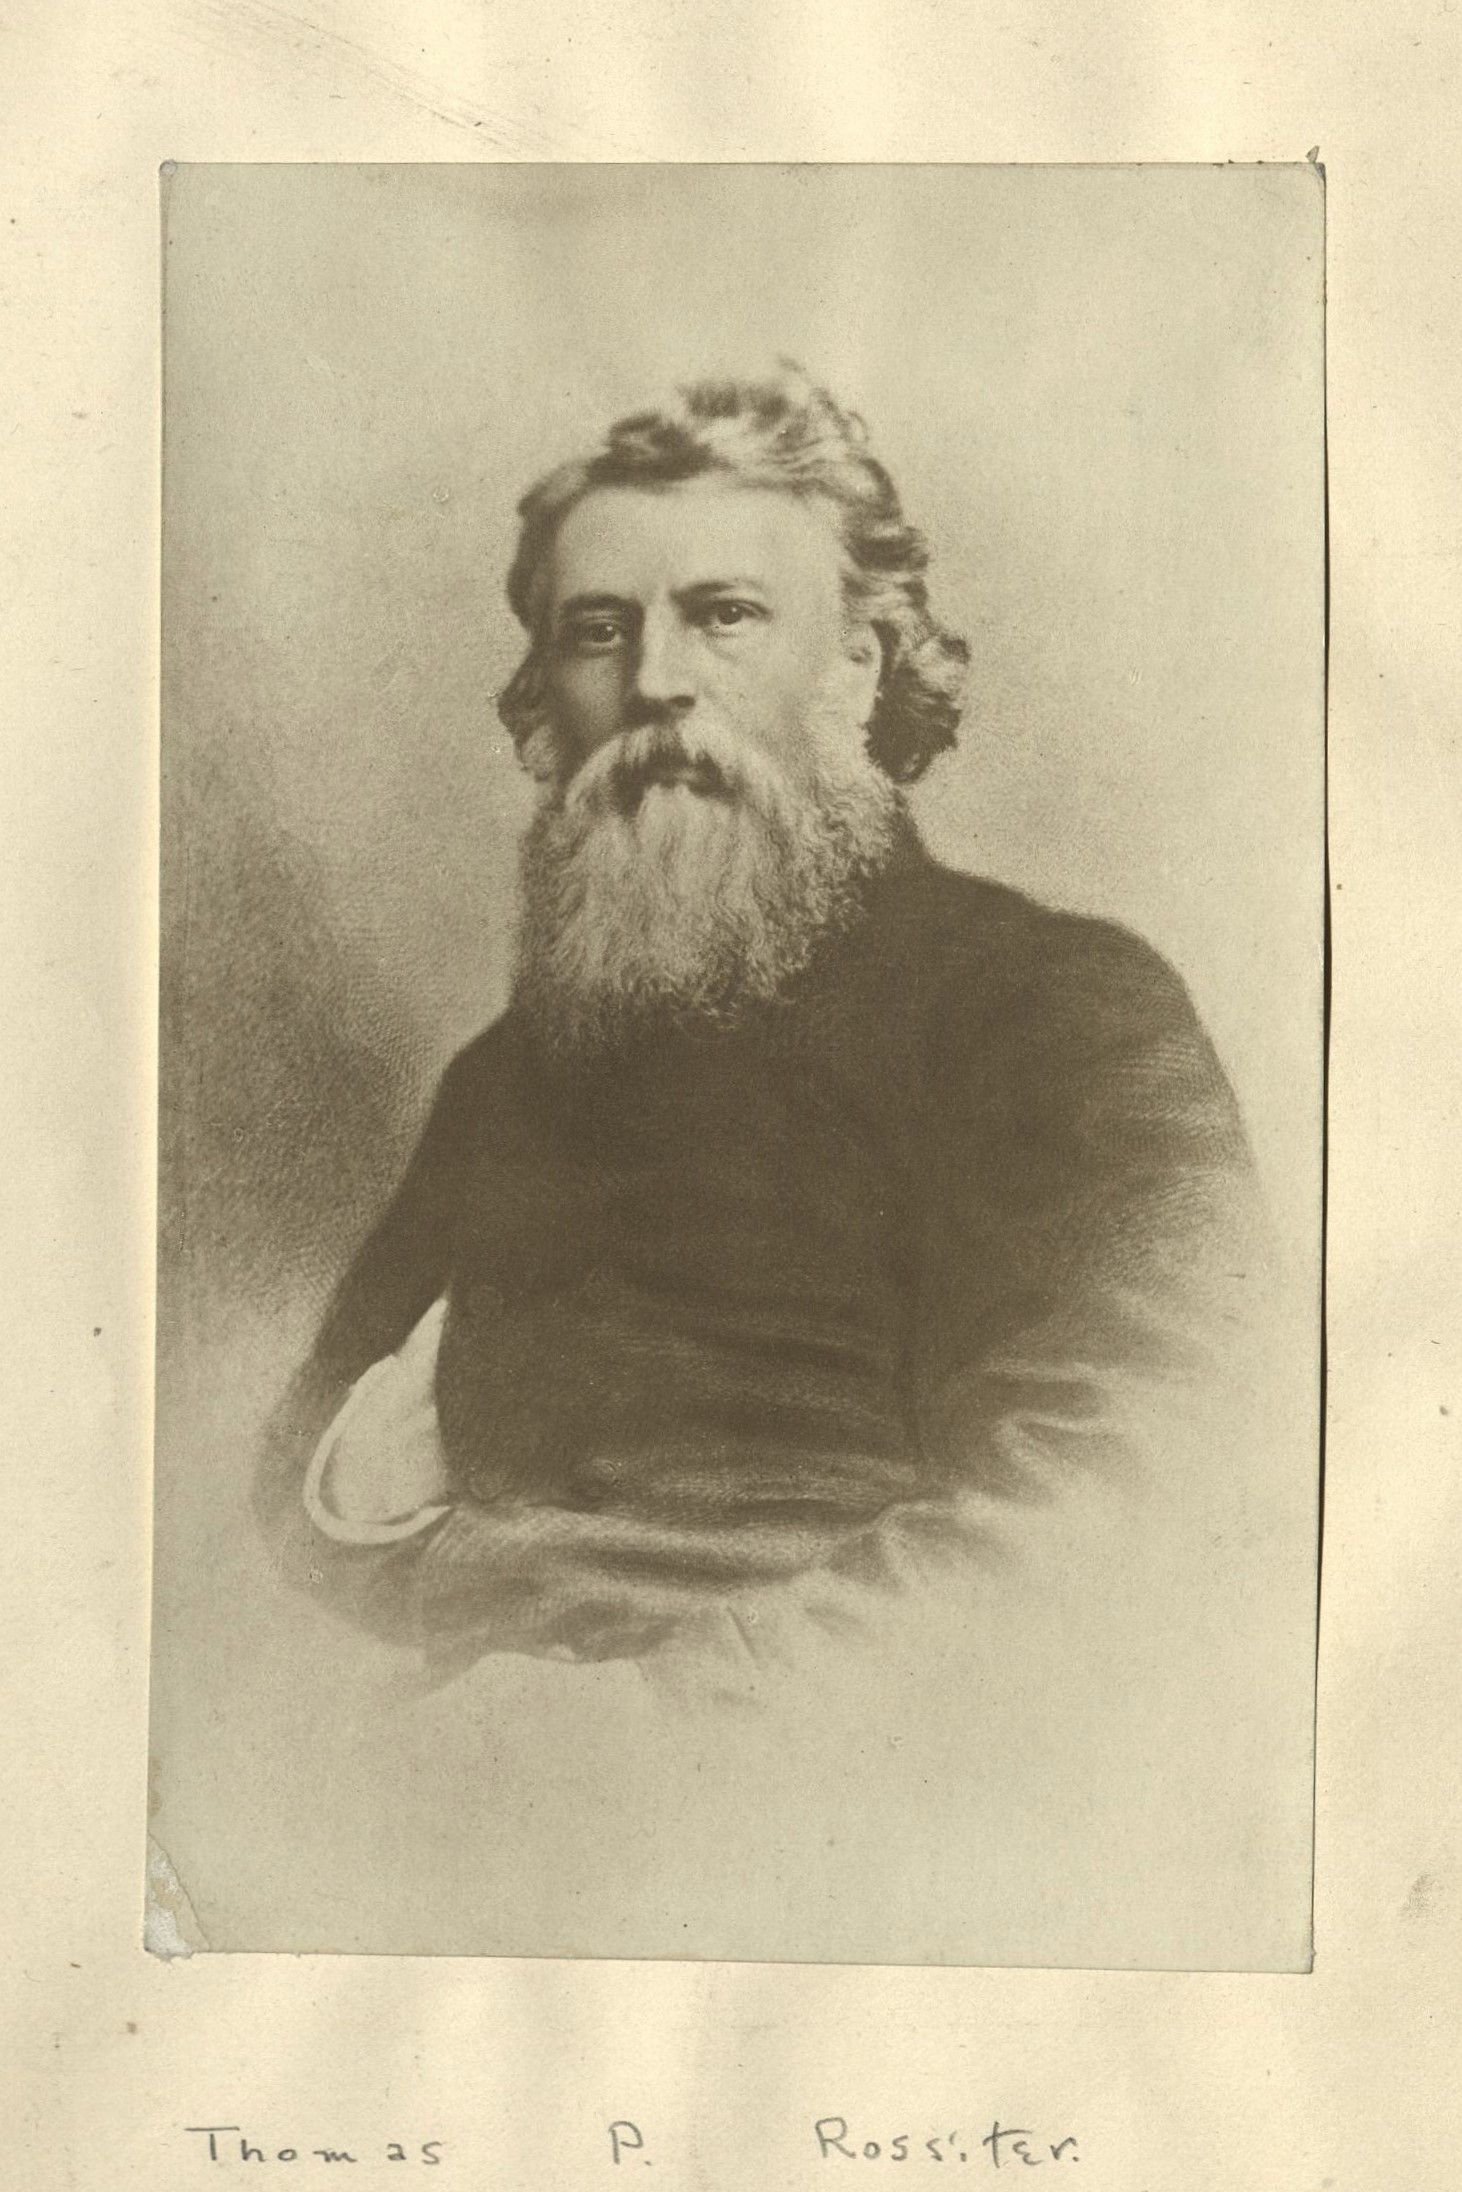 Member portrait of Thomas P. Rossiter